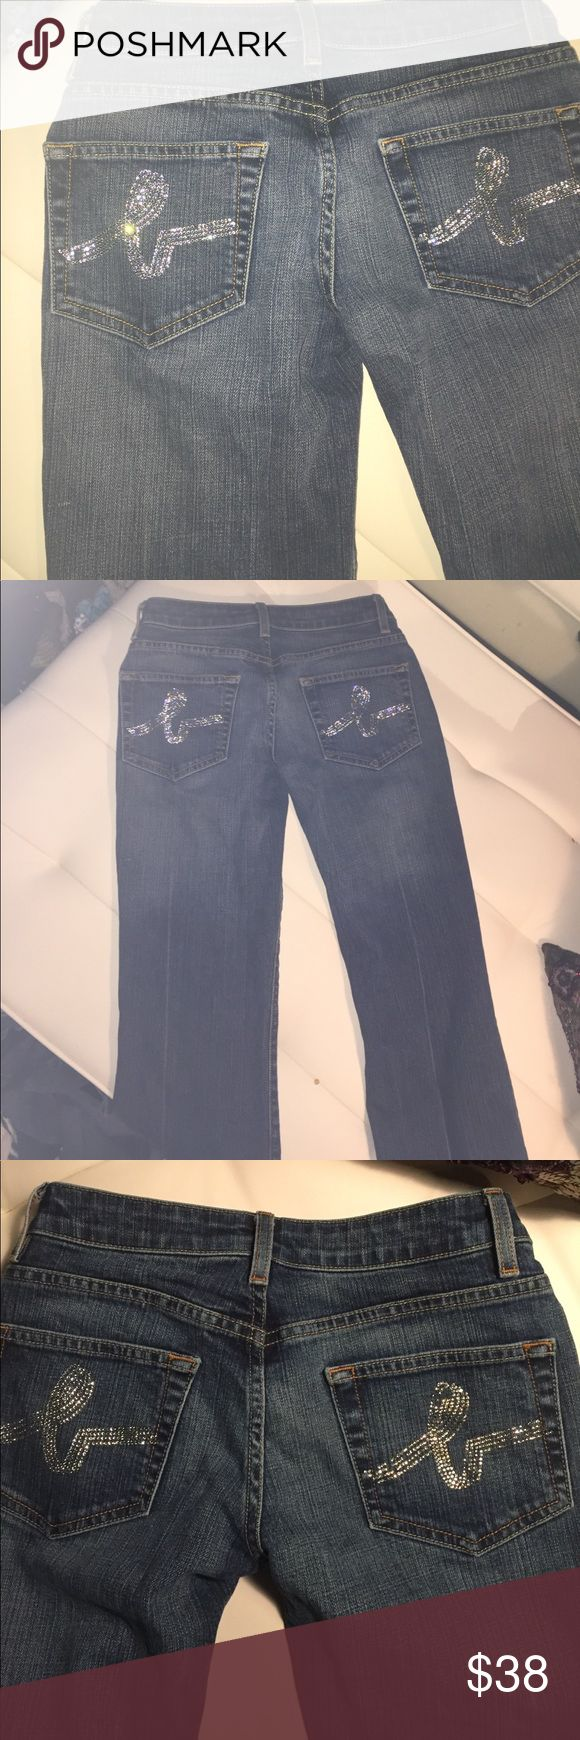 Bebe denim jeans with Rhinestone pockets dark wash These are soooo pretty on. Classy with a bit of jazz on the back pockets--nothing tacky. Look closely at photos a couple of rhinestones on right pocket fell off. No one should notice who shouldn't be noticing if you get what I mean;). Gorgeous dark wash. Great bargain!!! Sz 27 bebe Jeans Straight Leg